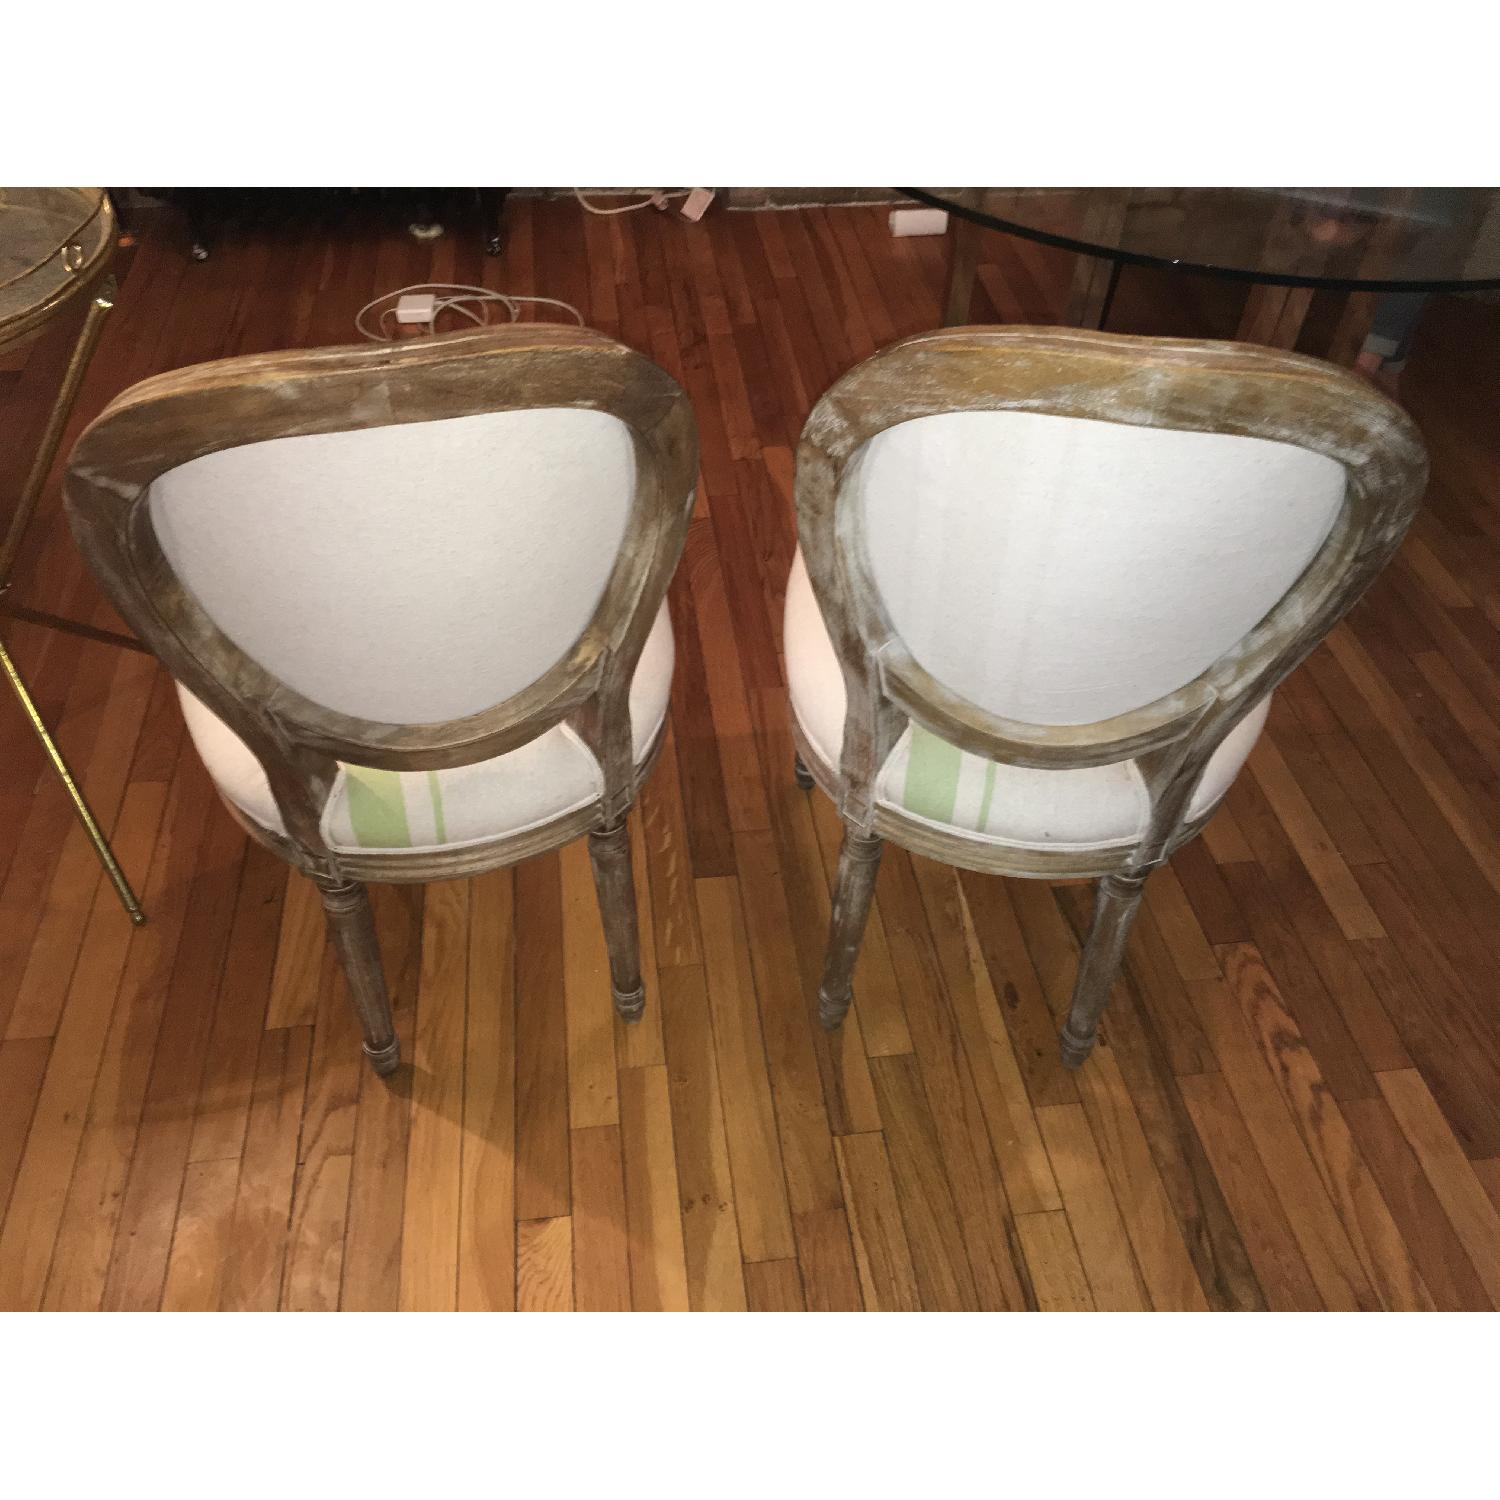 Louis XVI Boutique Design Dining Chairs - 2 Available - image-4